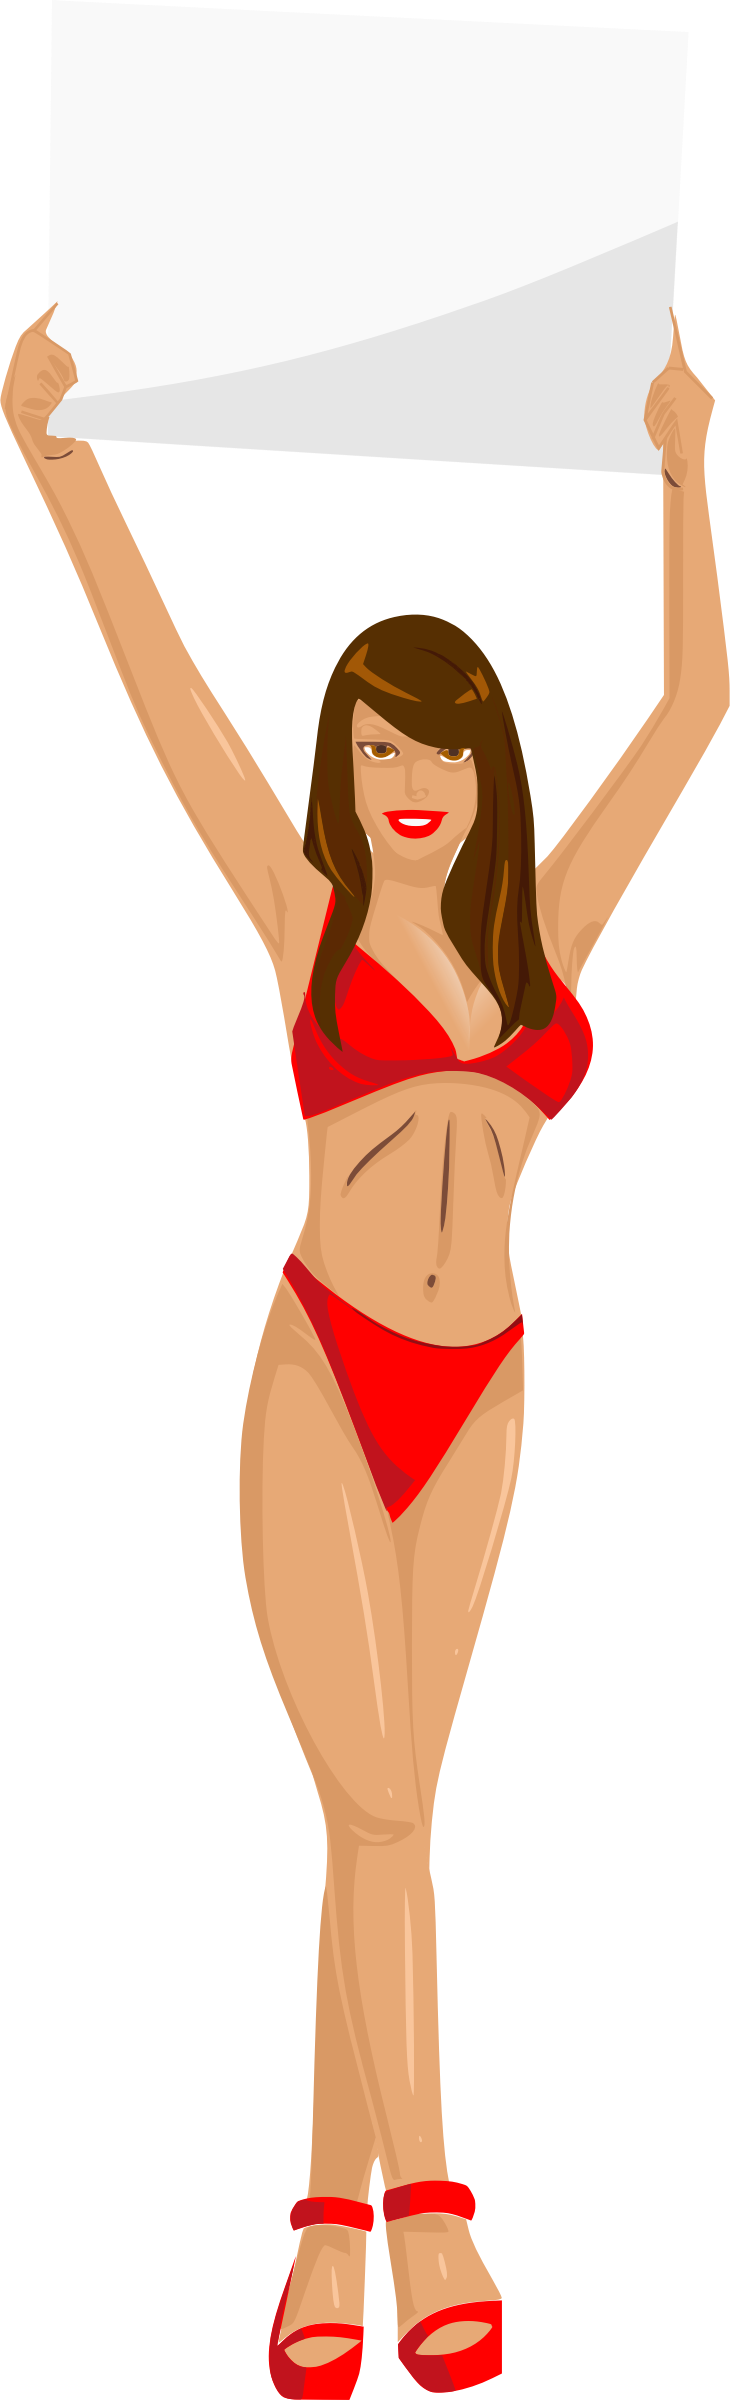 Girl with sign (red bikini, brown hair, light skin) by Firkin